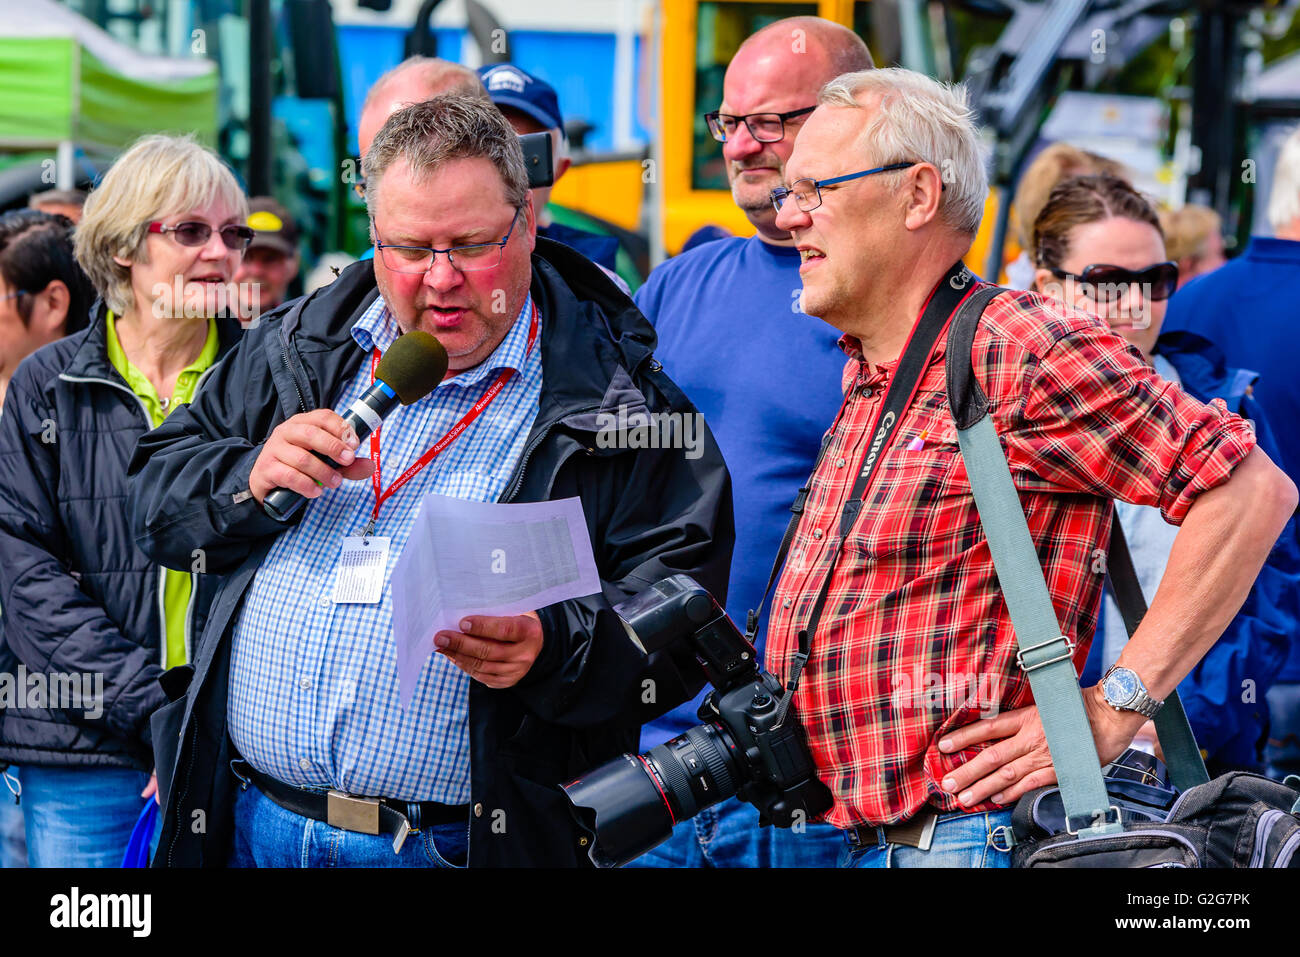 Emmaboda, Sweden - May 14, 2016: Forest and tractor (Skog och traktor) fair. Photographer and speaker with microphone - Stock Image